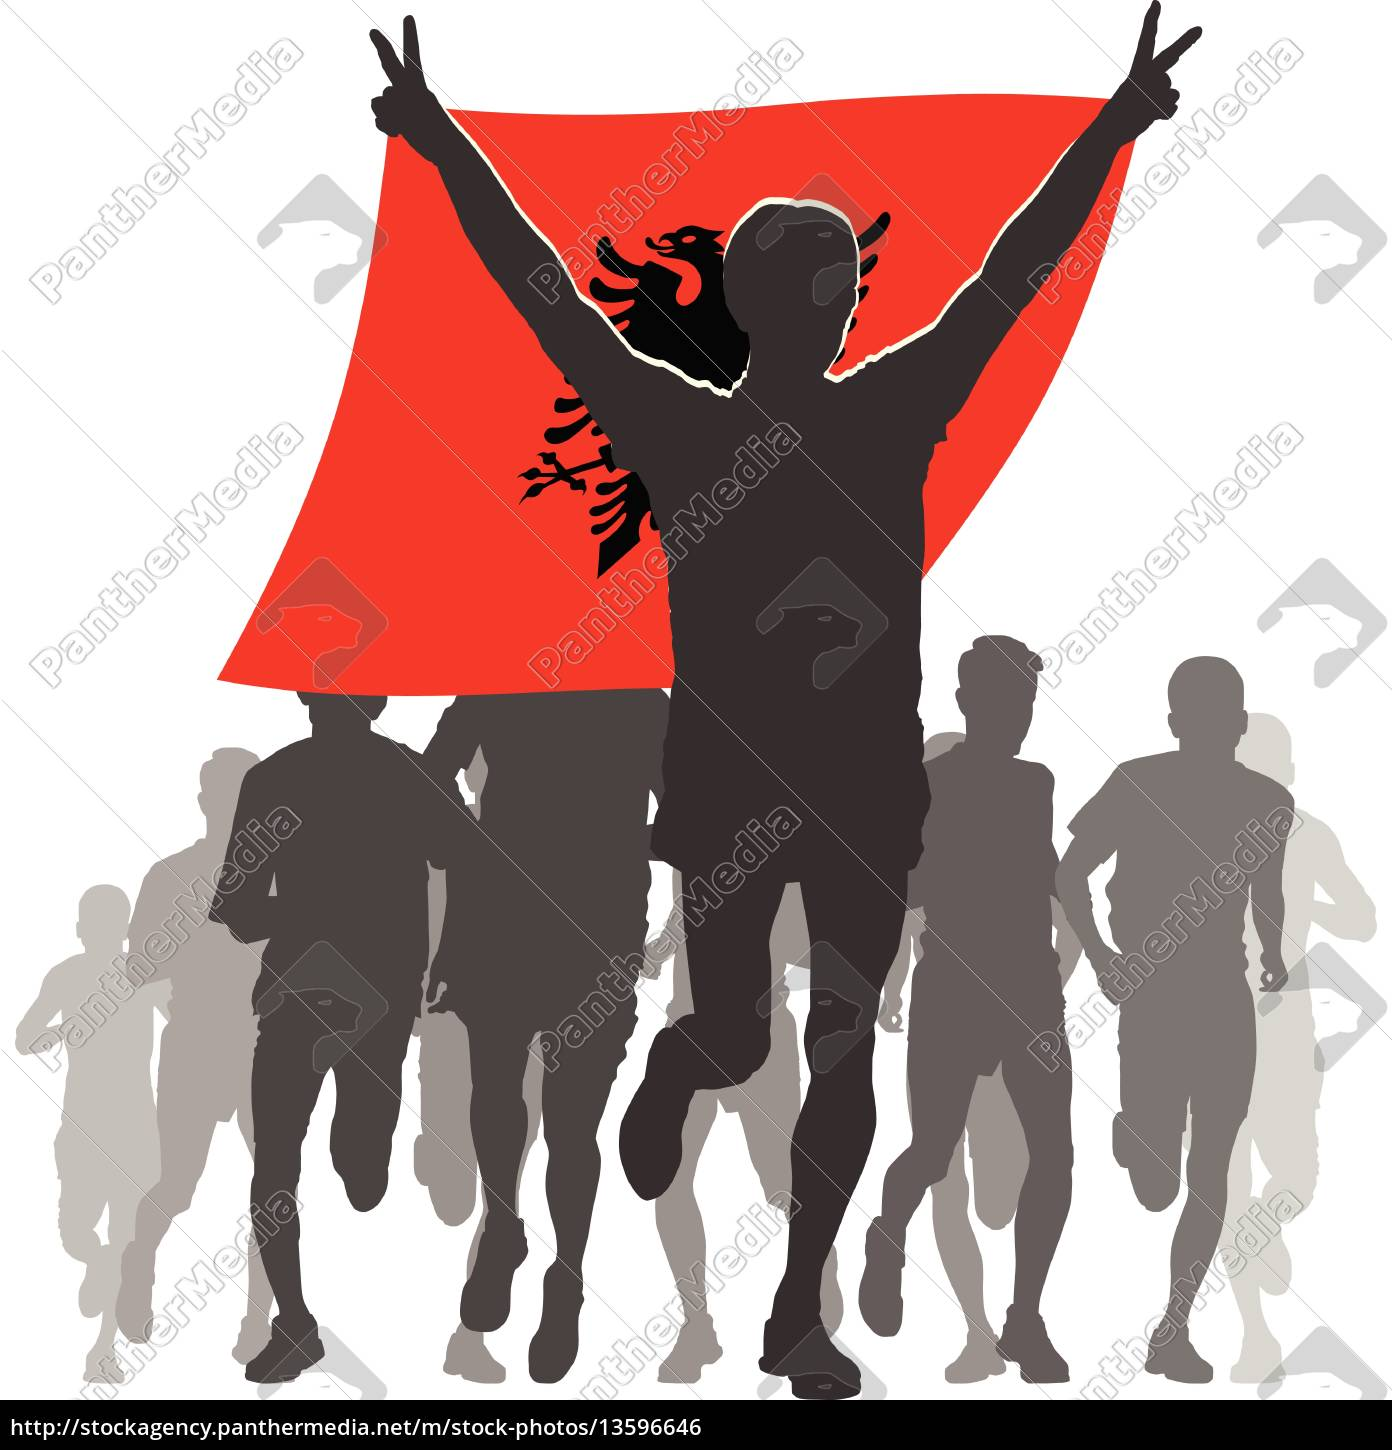 athlete, with, the, albania, flag, at - 13596646